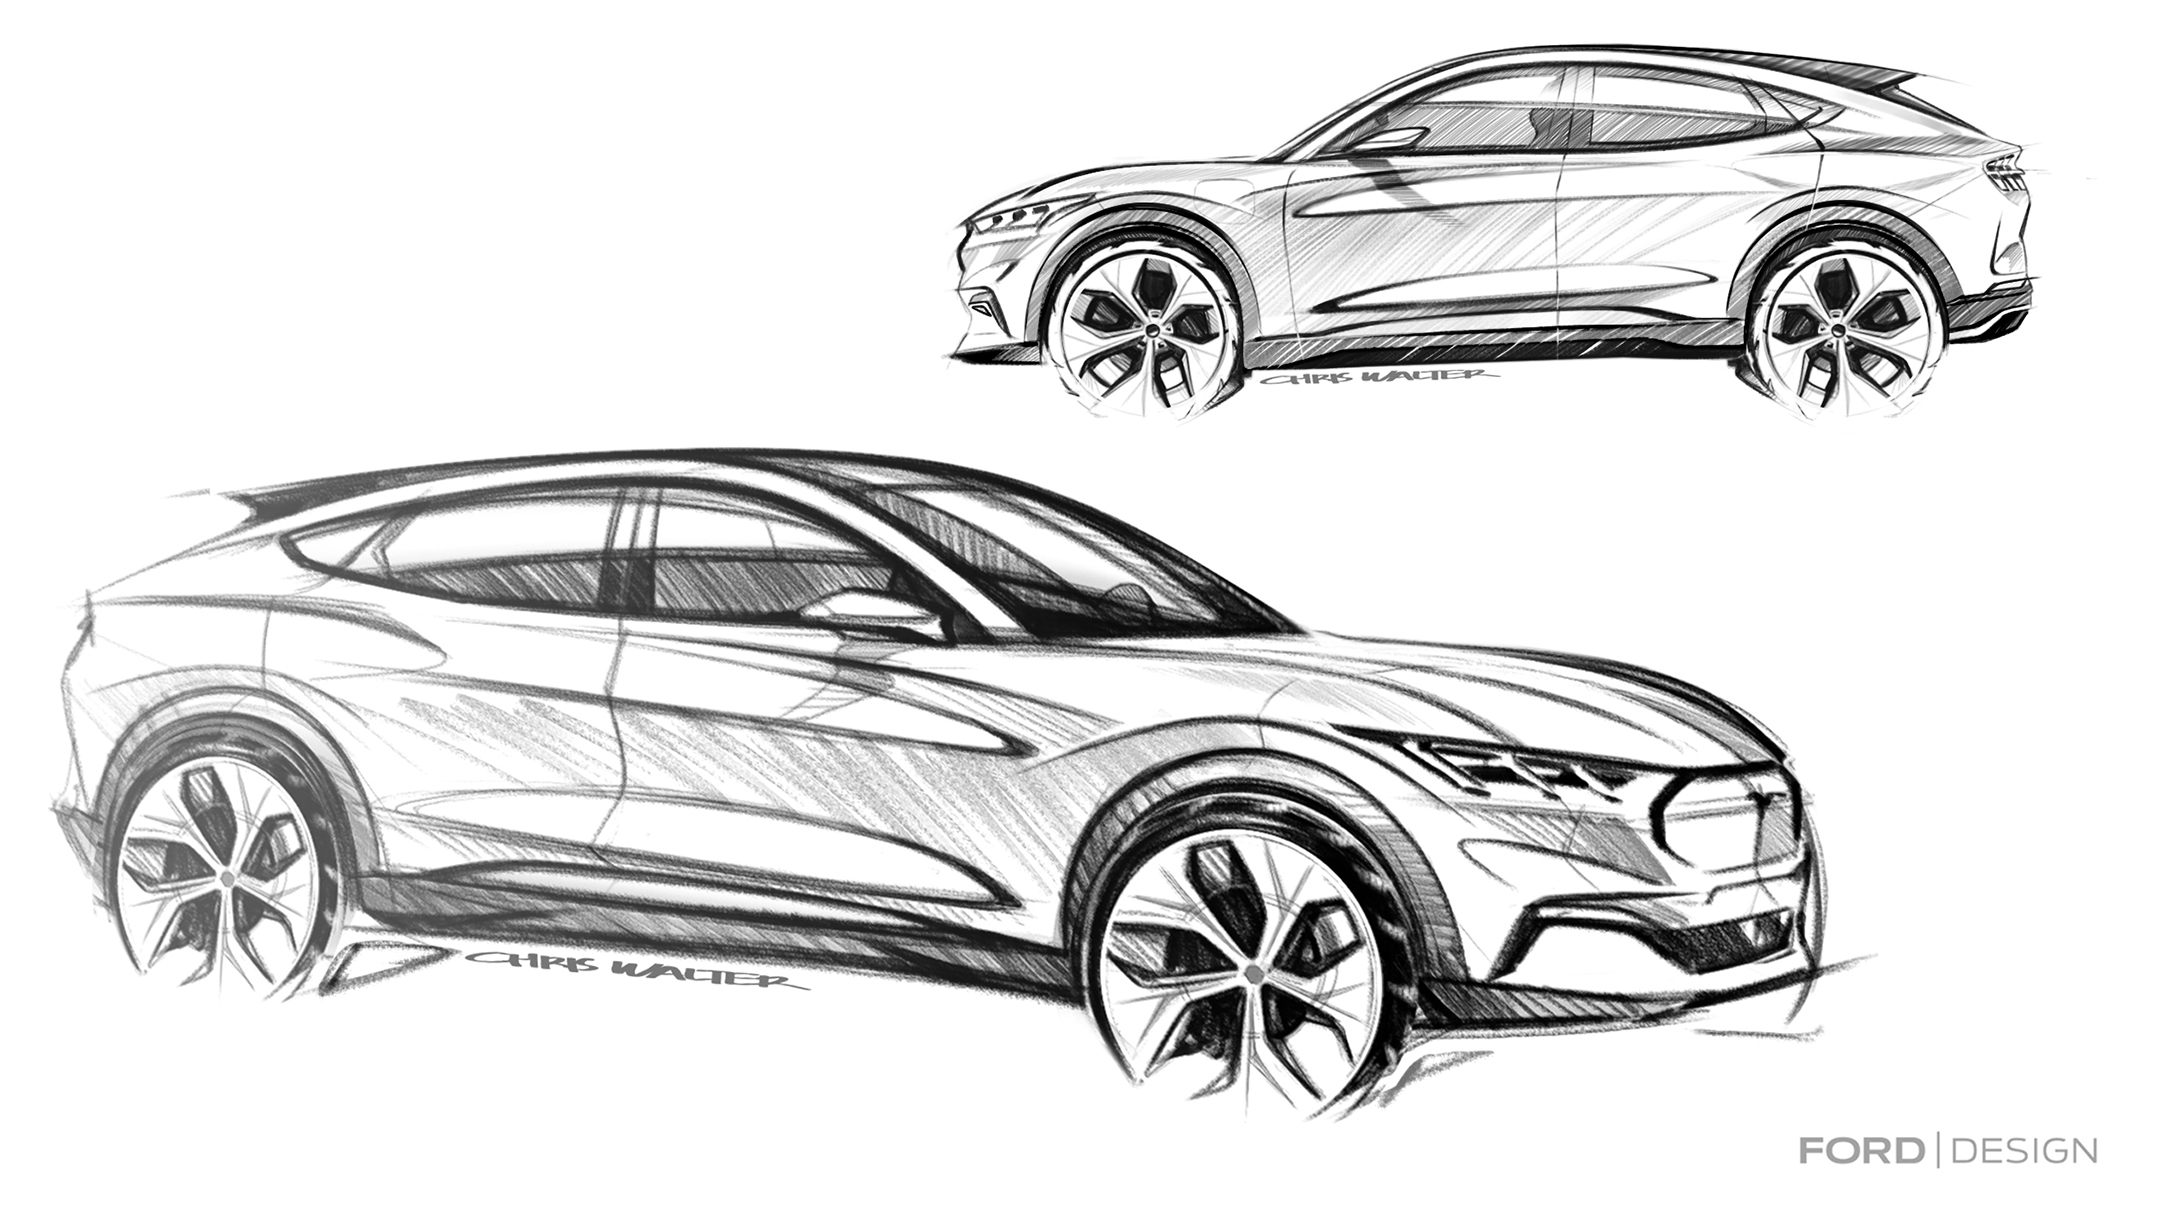 Ford Mustang Mach-E - 2019 - design sketch